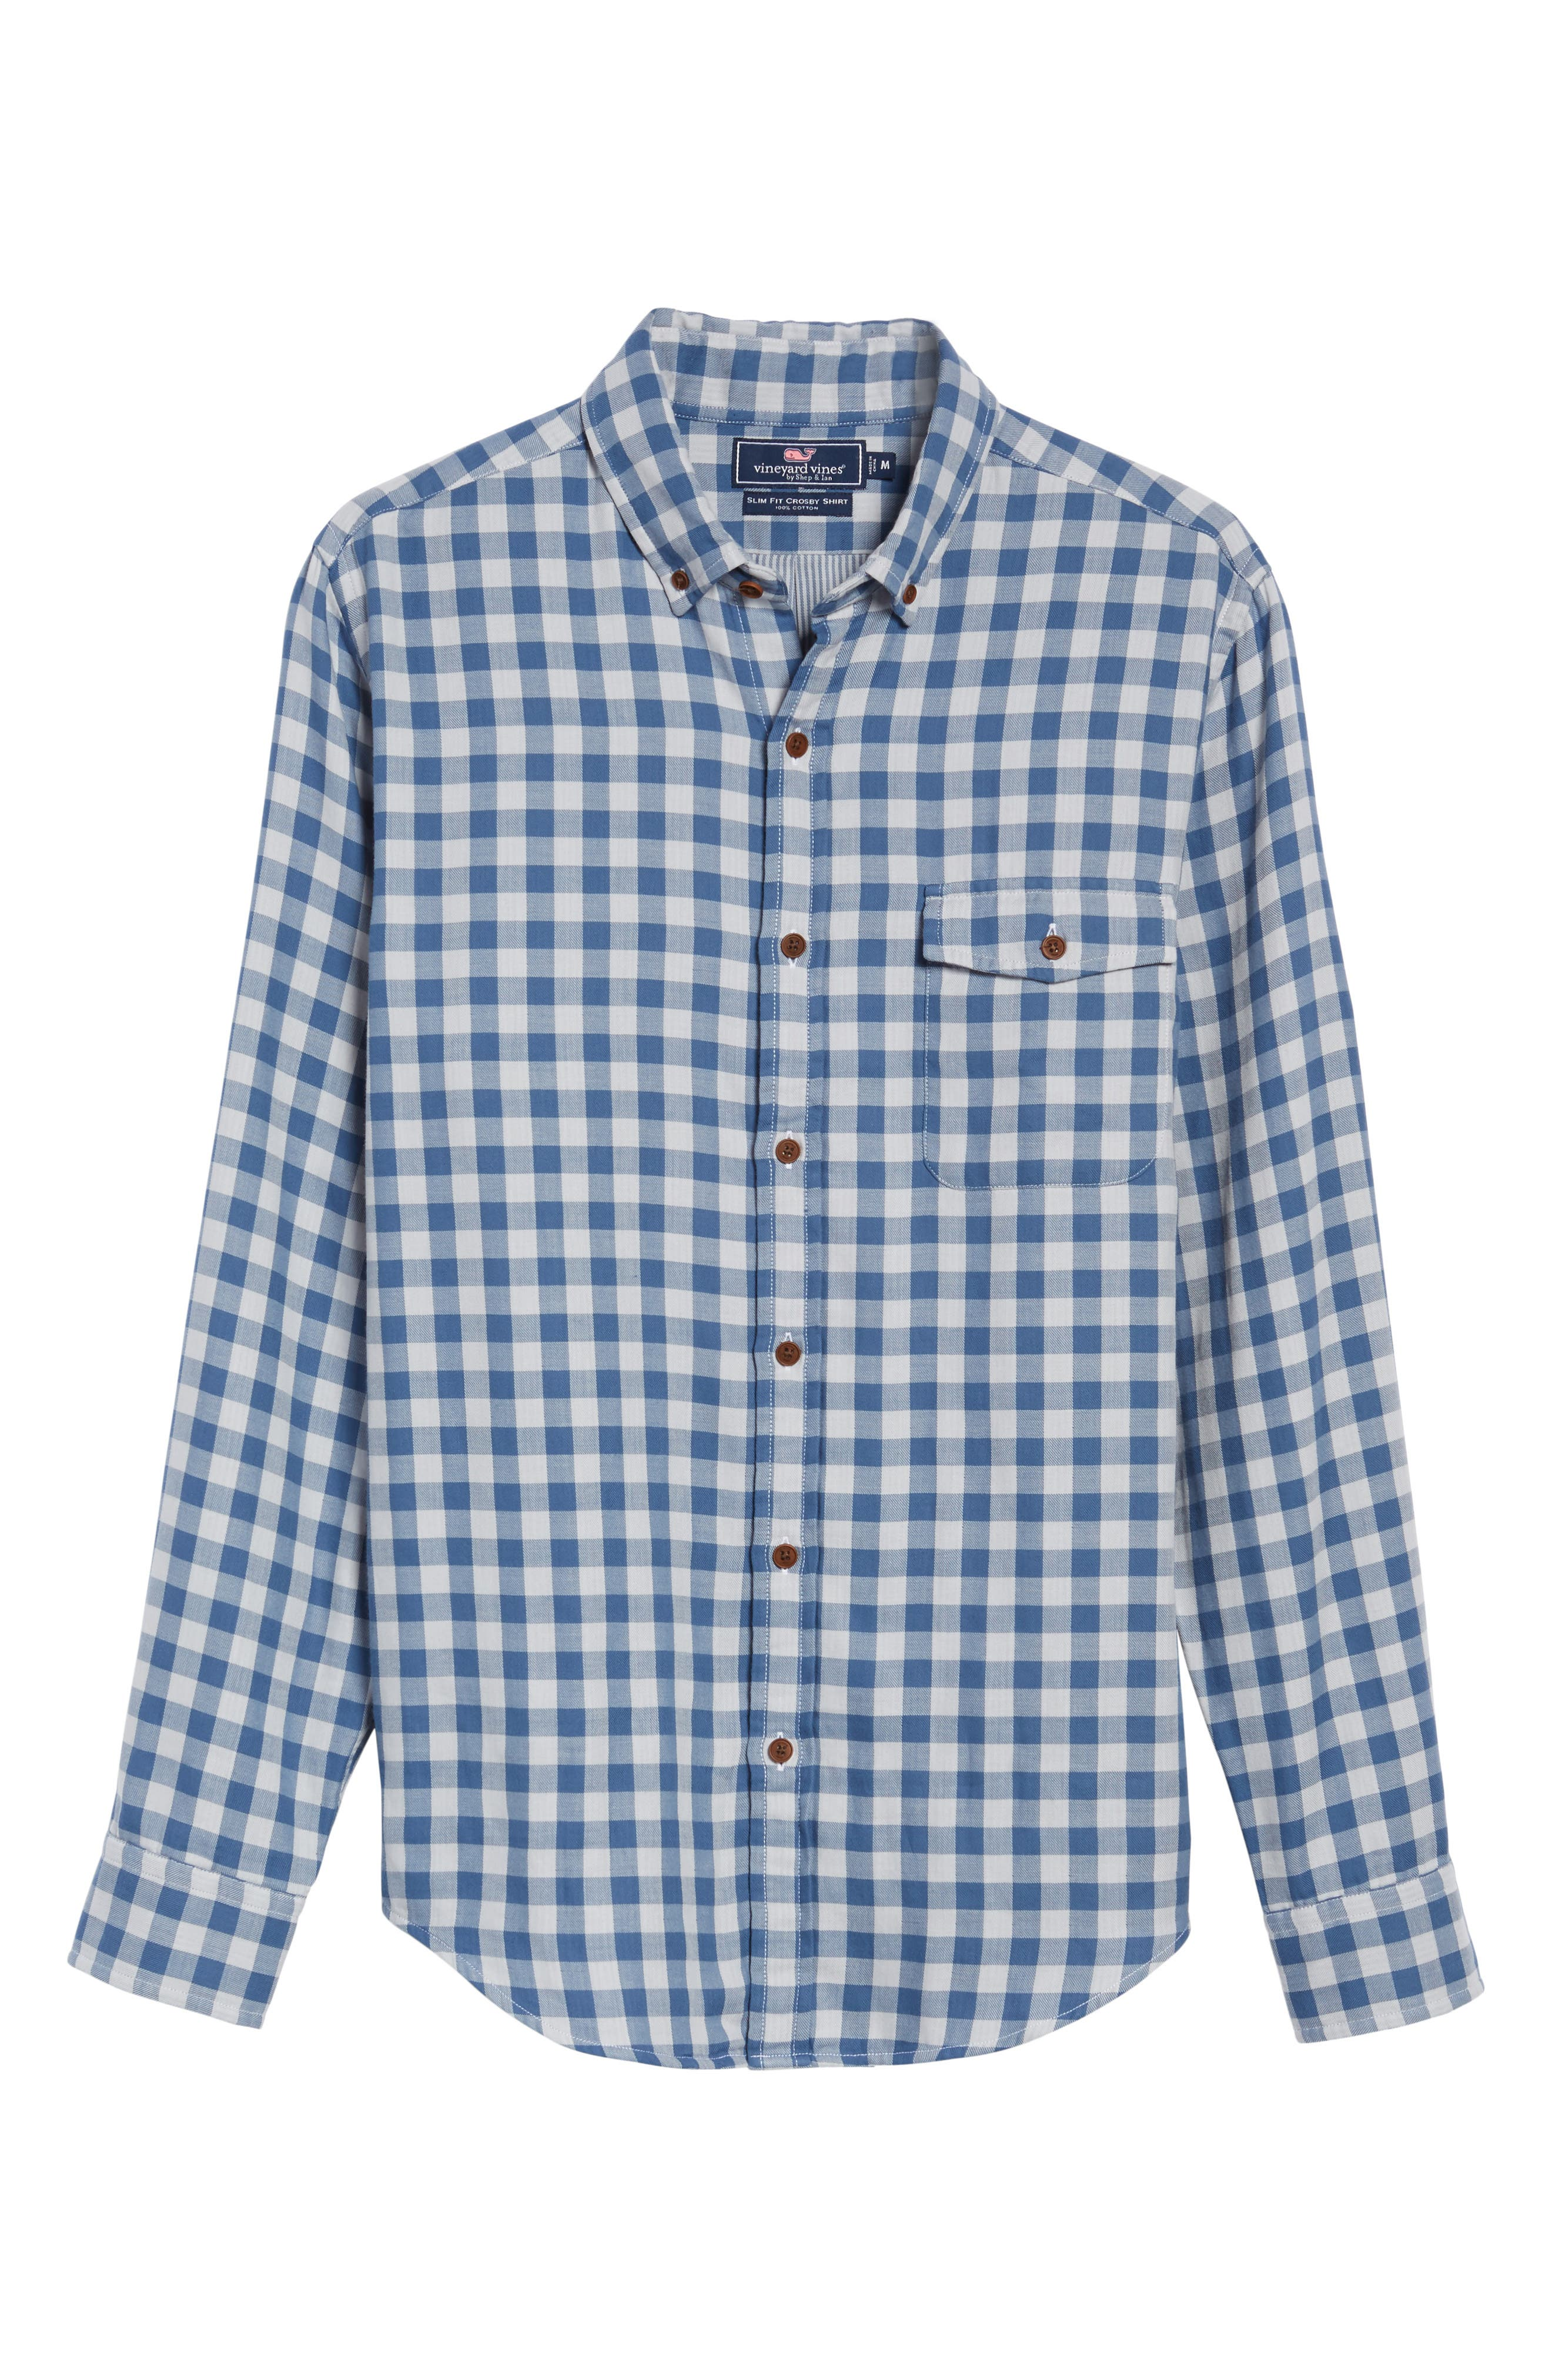 Crosby Slim Blue Heron Gingham Sport Shirt,                             Alternate thumbnail 6, color,                             Moonshine